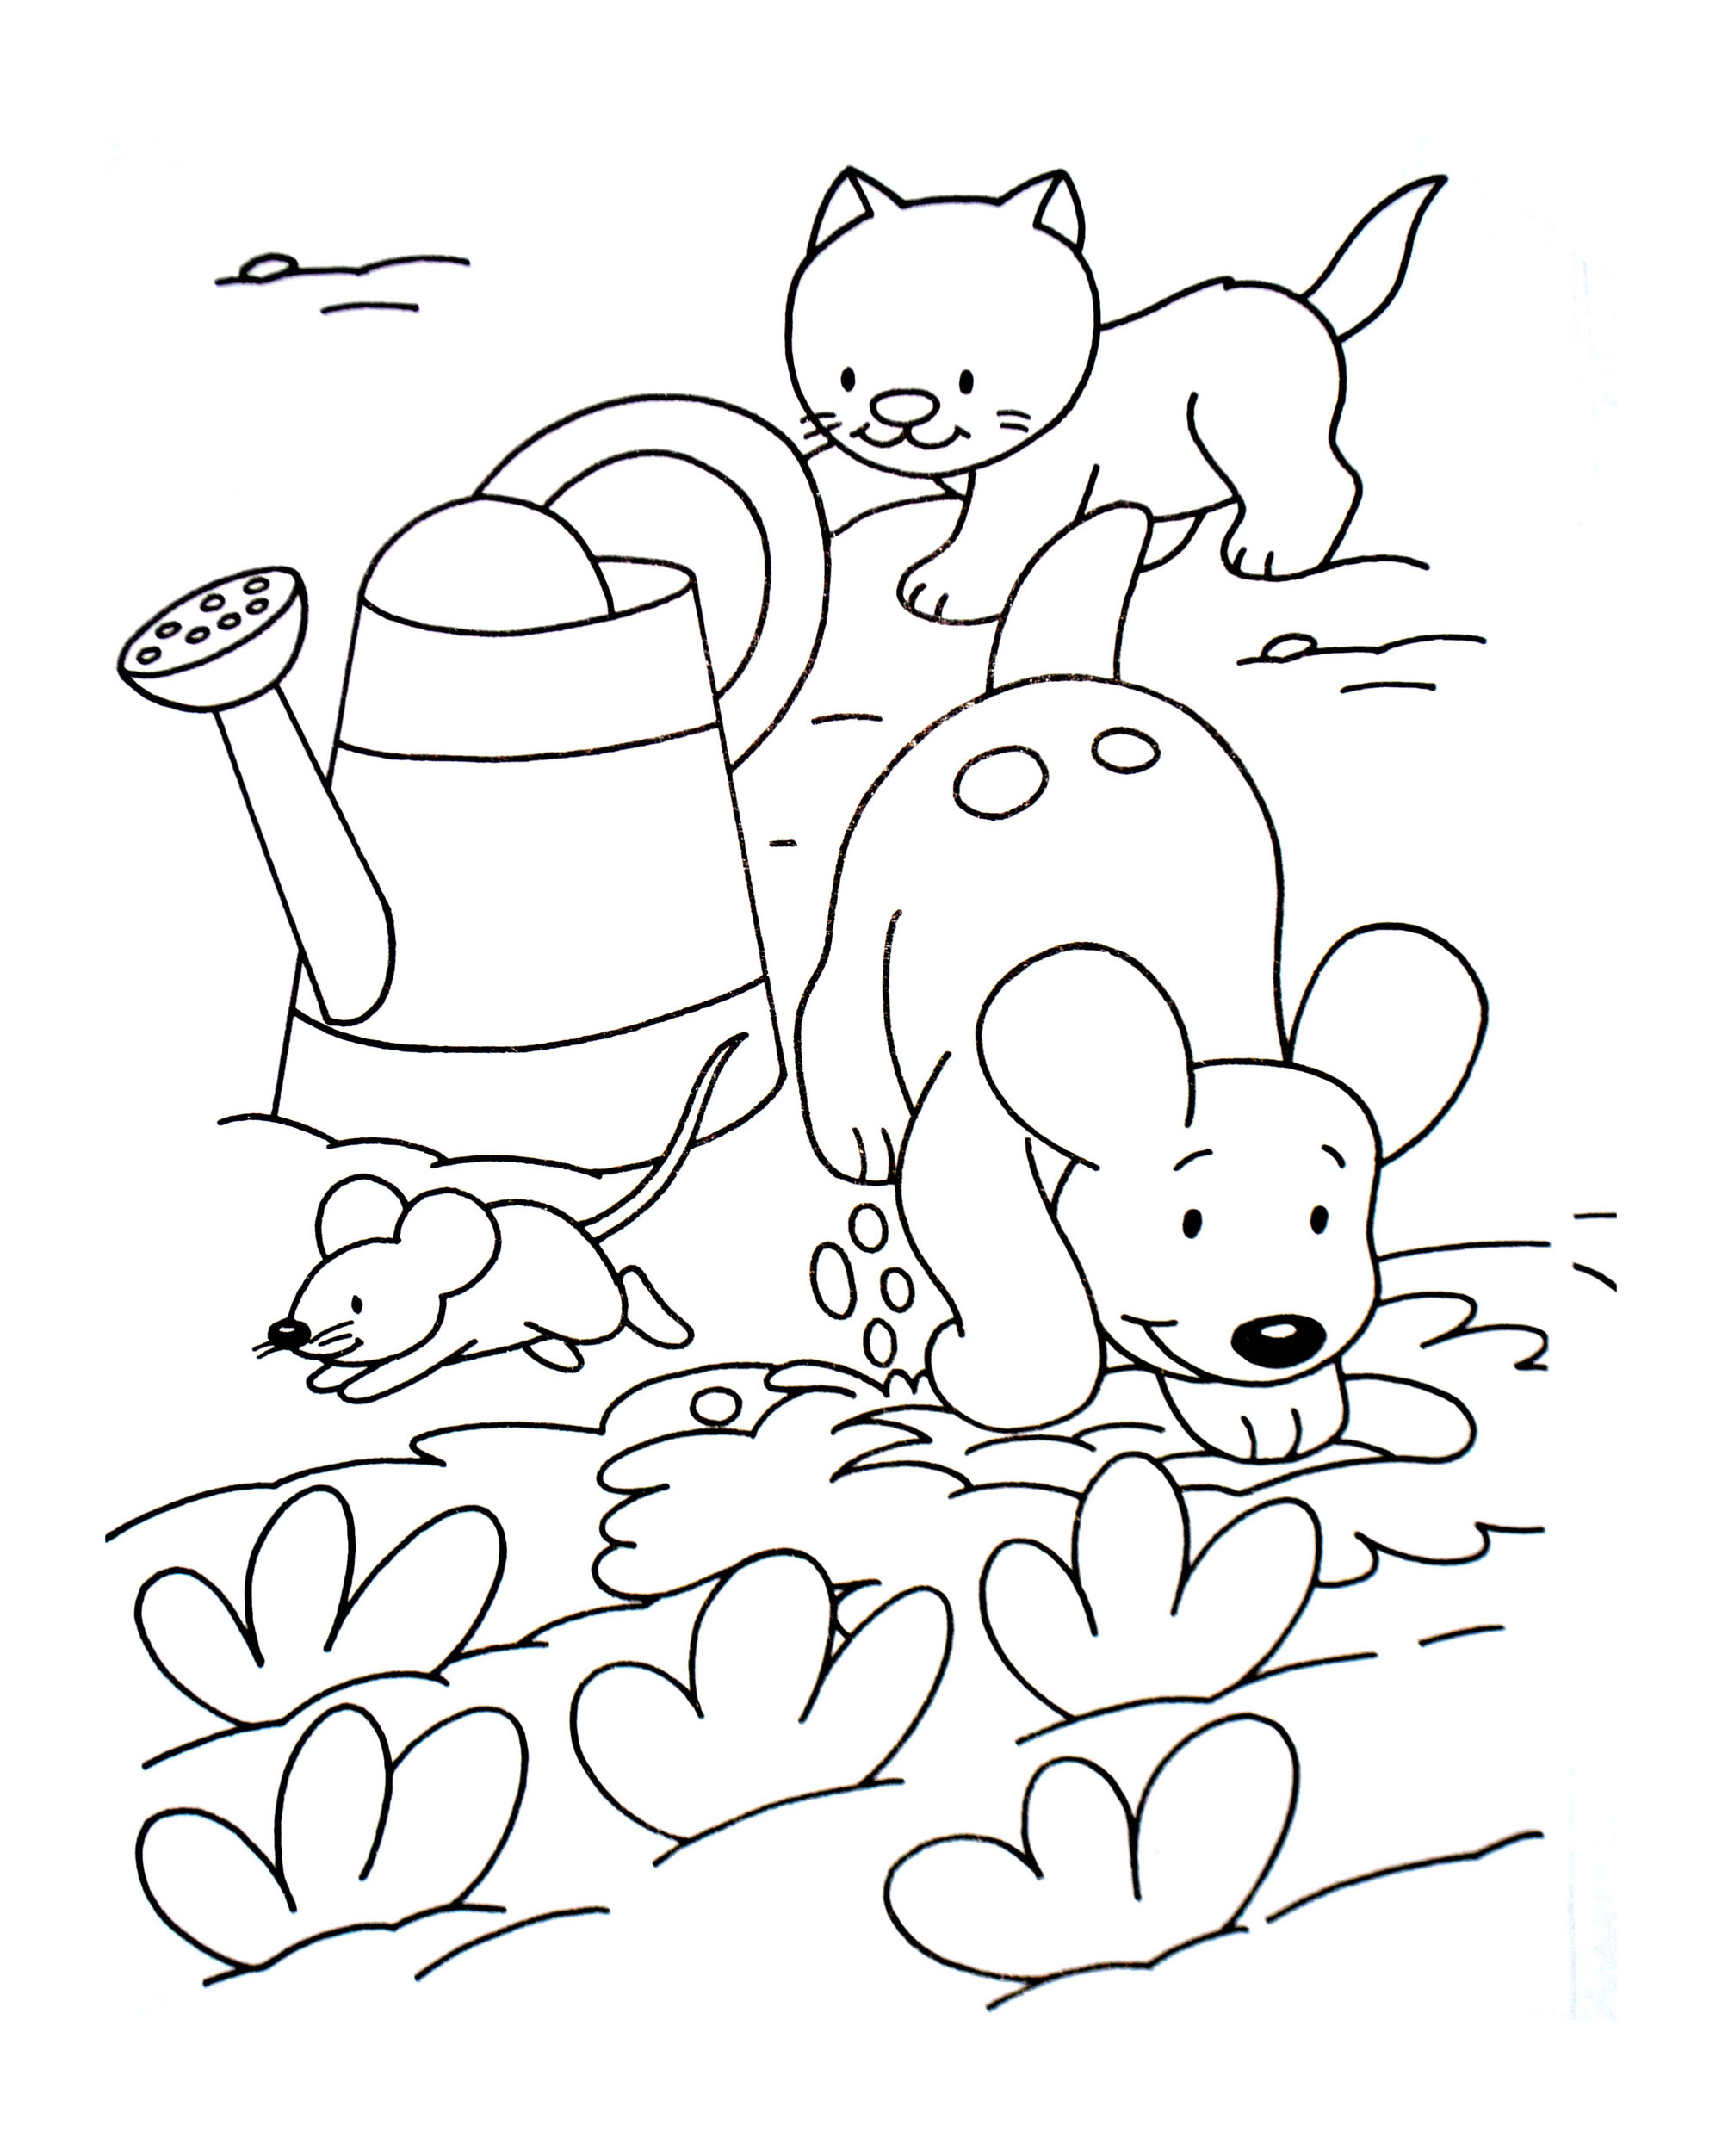 Free Cats coloring page to download : kittens and mouses